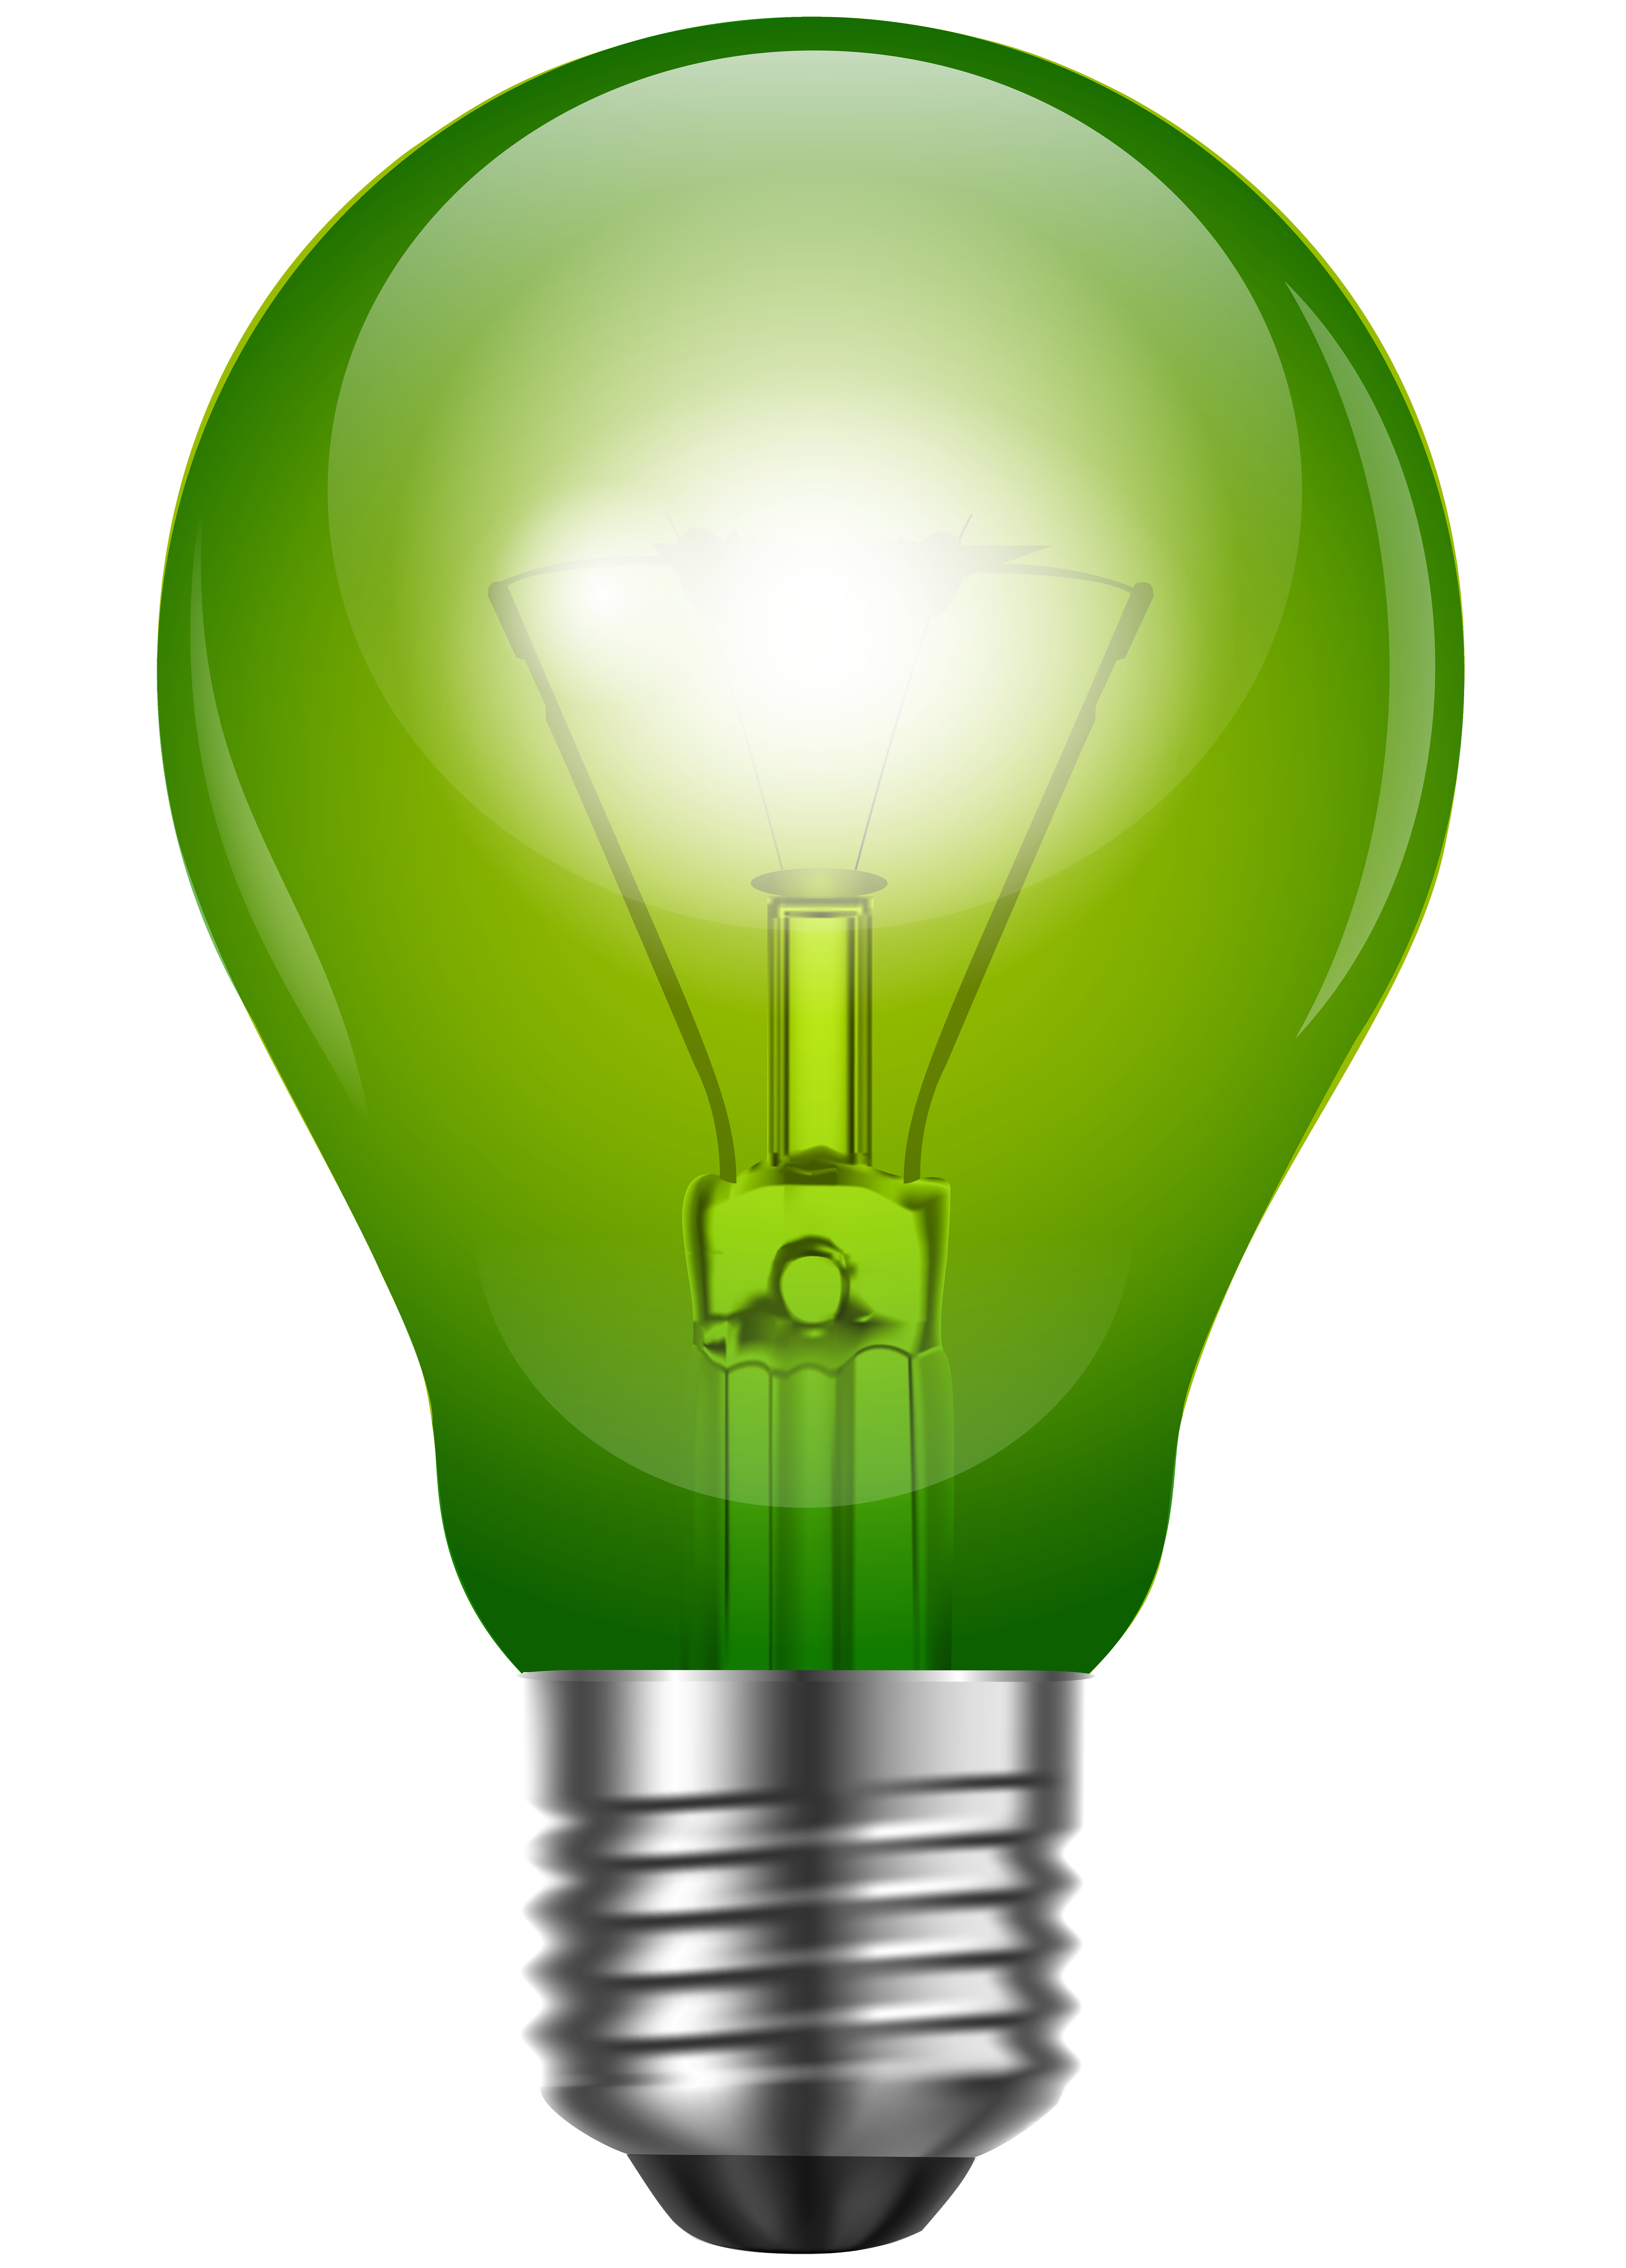 Green light clipart banner royalty free Green Light Bulb PNG Clip Art - Best WEB Clipart banner royalty free